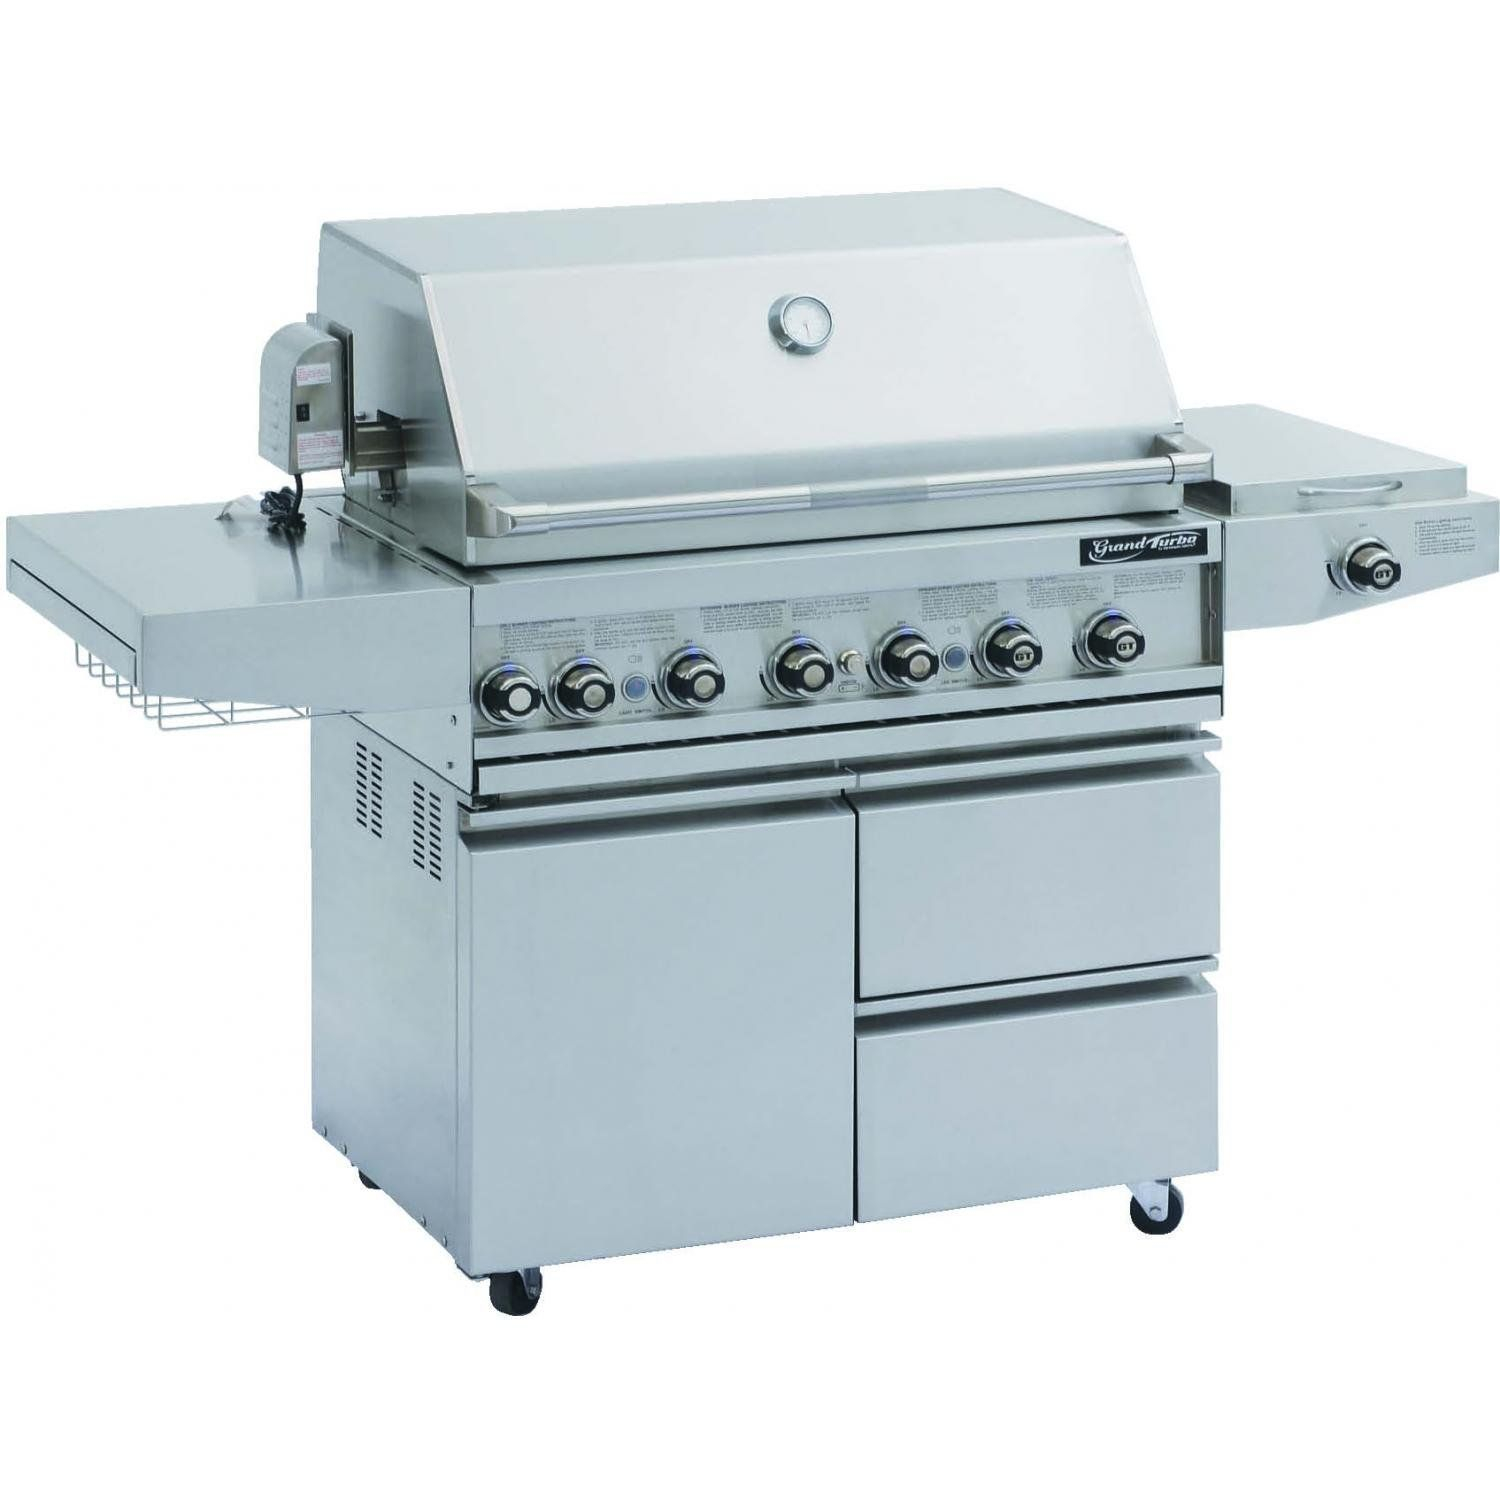 Grand Turbo Barbeques Galore 38 Inch Propane Gas Grill On intended for measurements 1500 X 1500